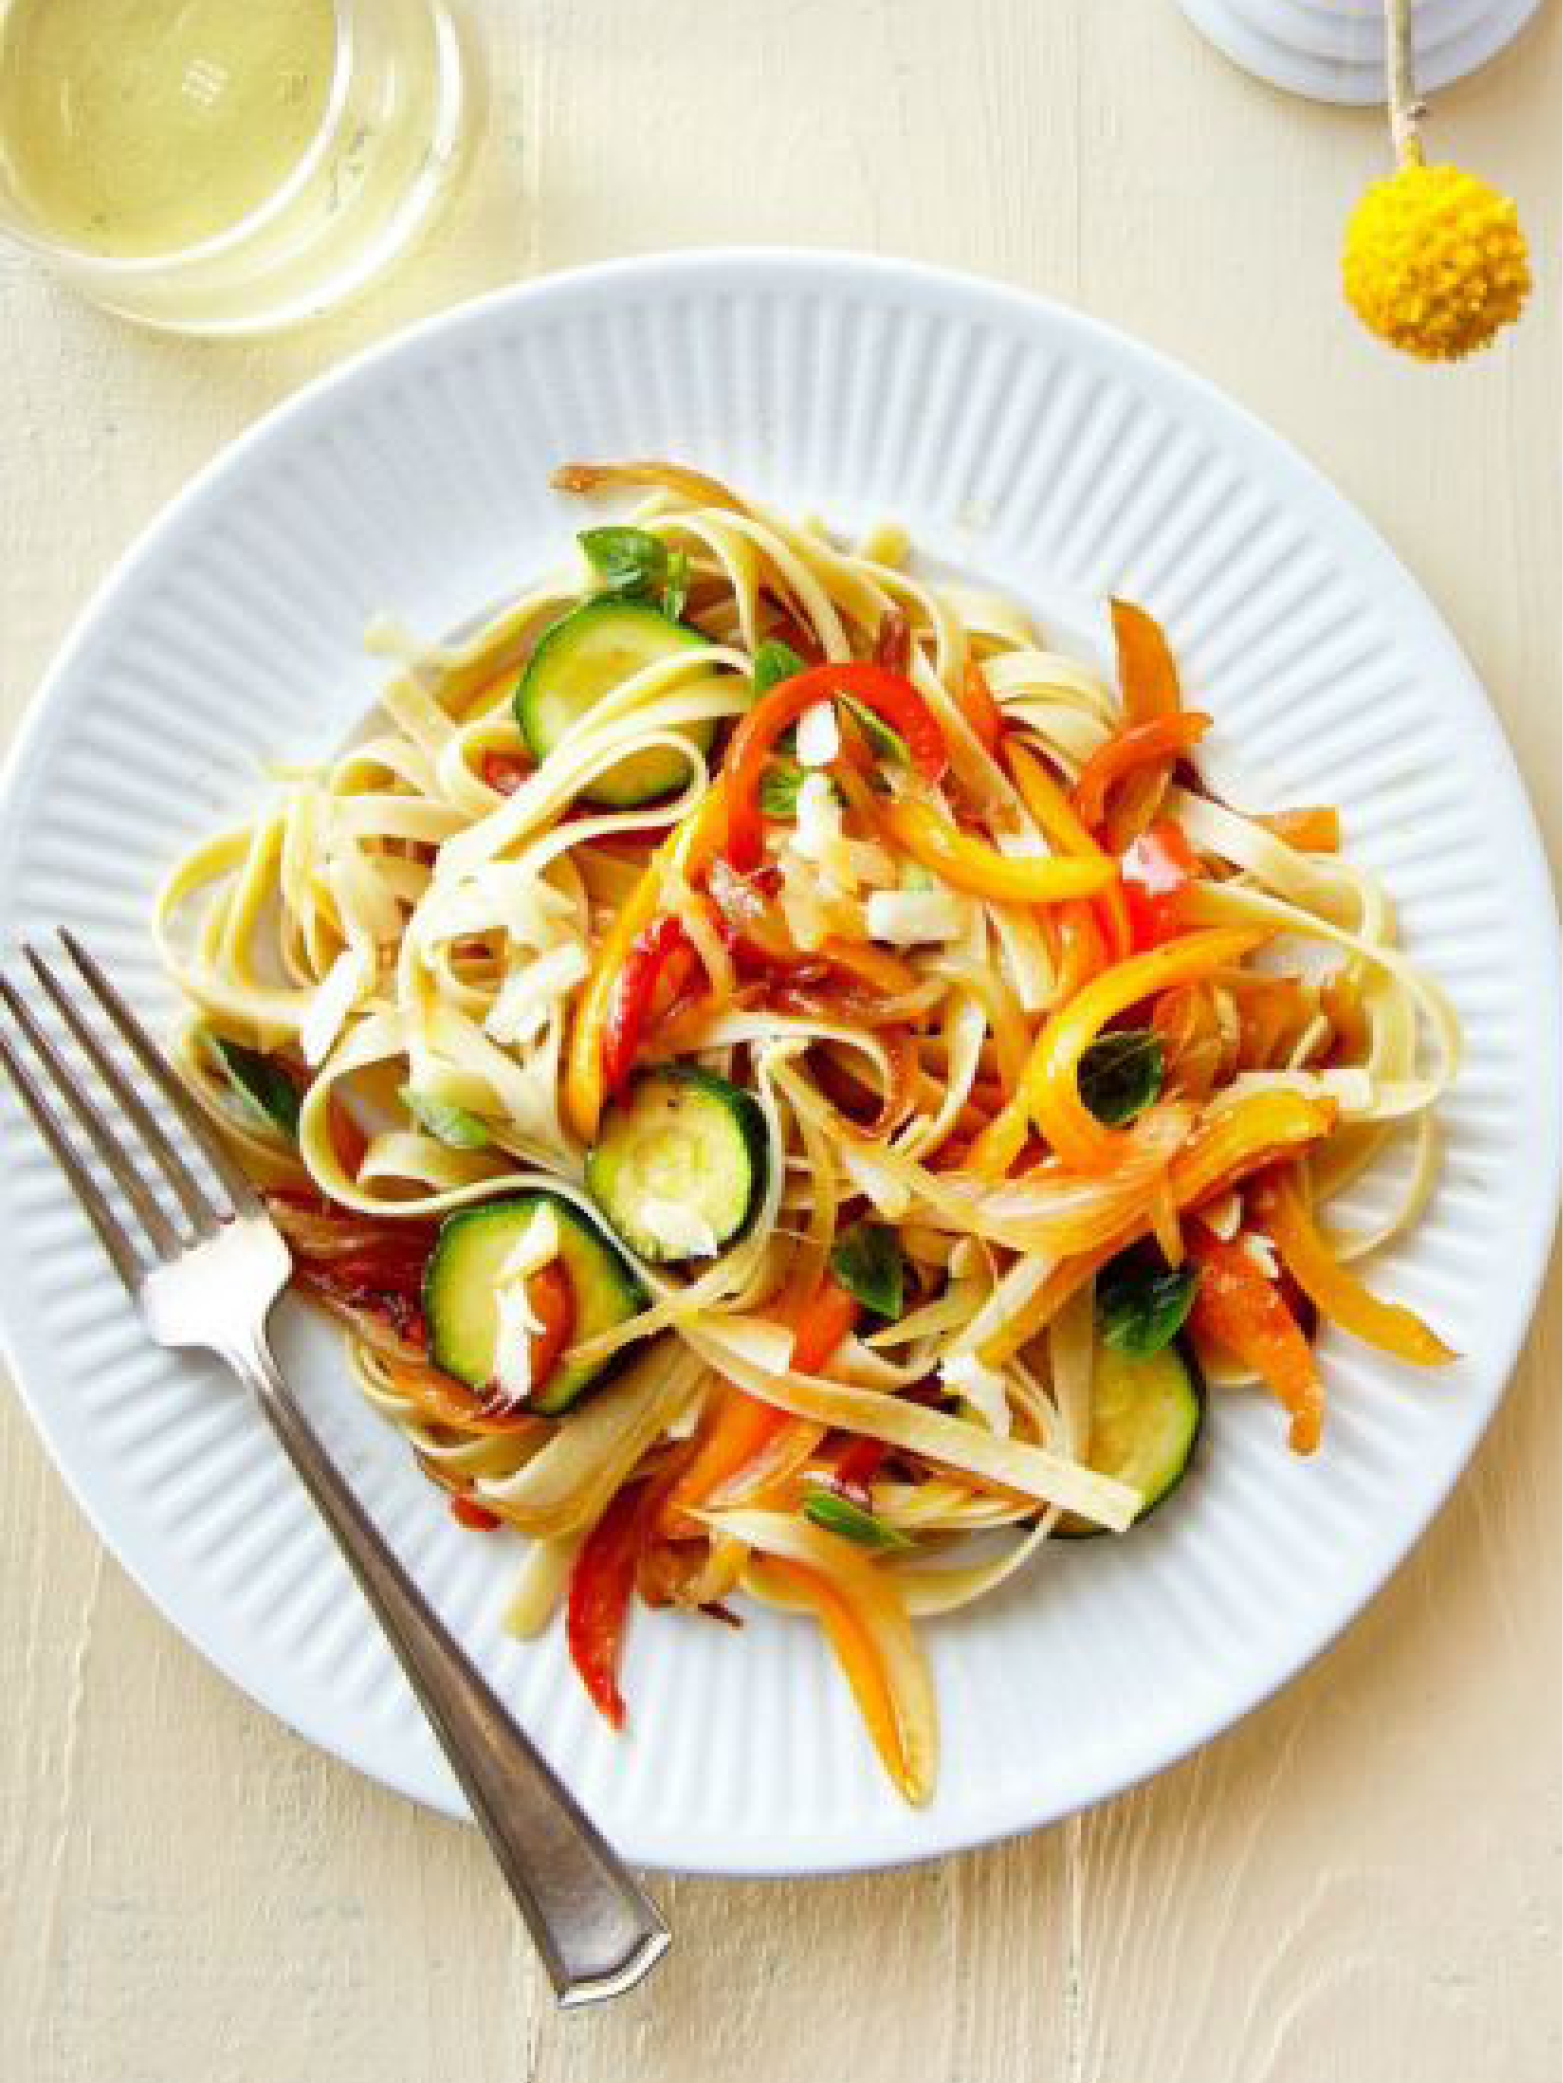 Pasta with Sautéed Peppers, Zucchini, and Smoked Mozzarella  Country Living